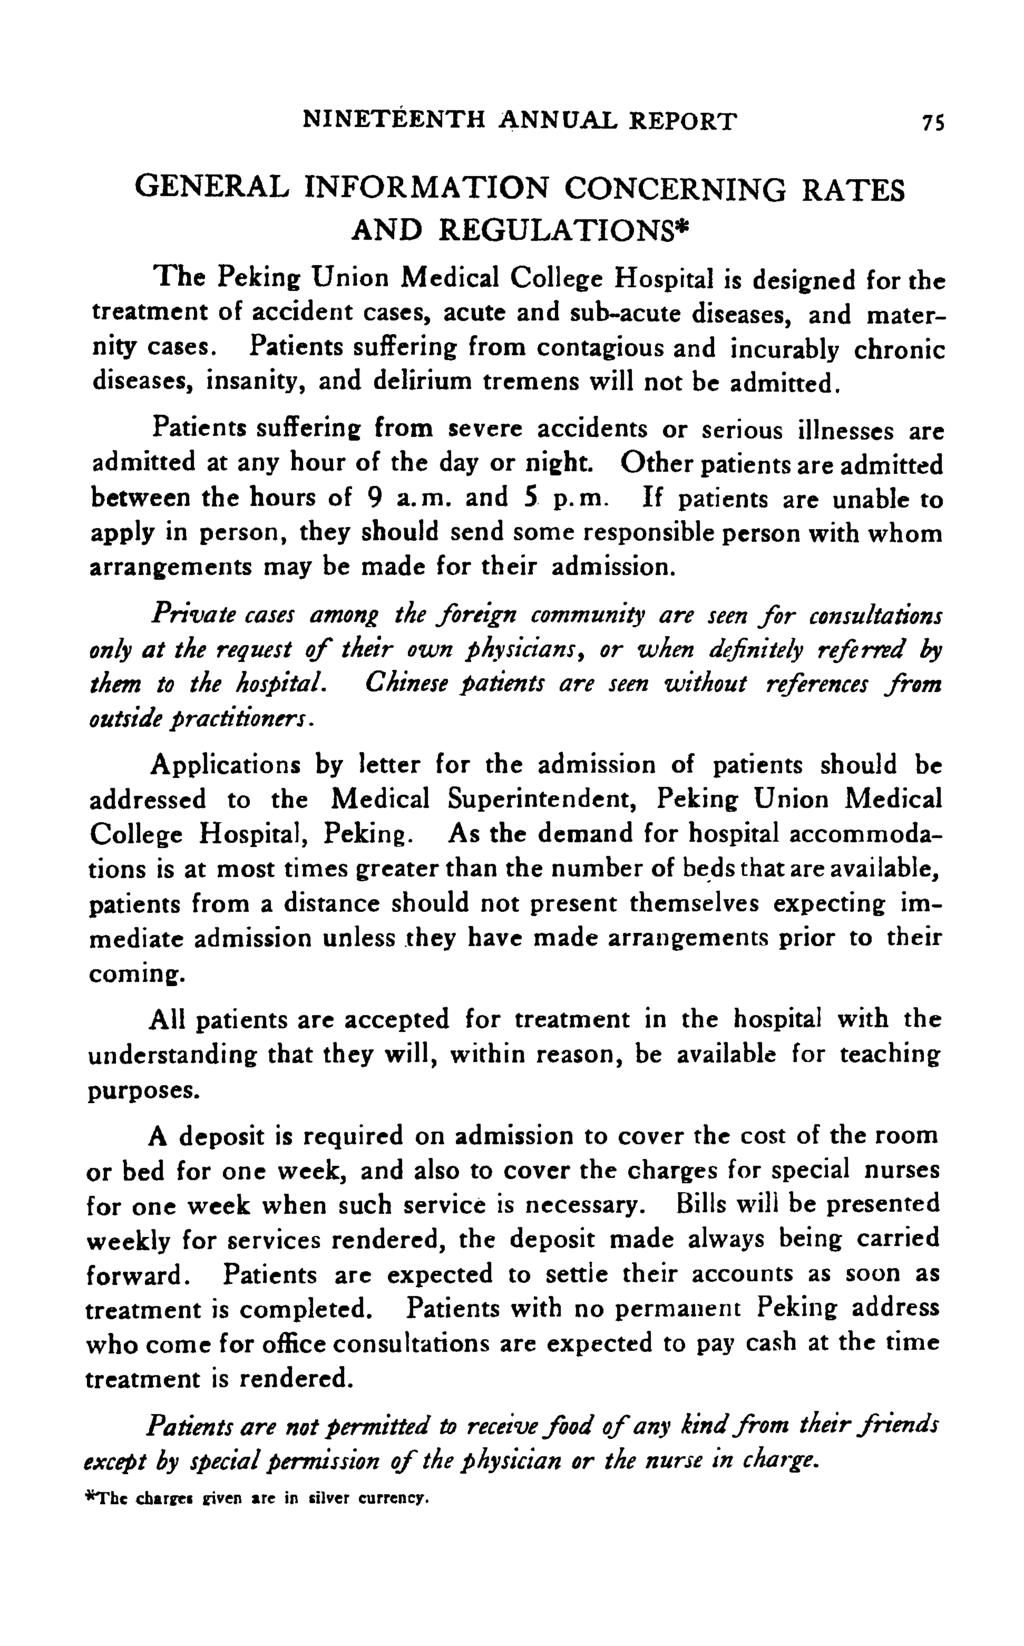 NINETEENTH ANNUAL REPORT 7S GENERAL INFORMATION CONCERNING RATES AND REGULATIONS* The Peking Unin Medical Cllege Hspital is designed fr the treatment f accident cases, acute and sub-acute diseases,